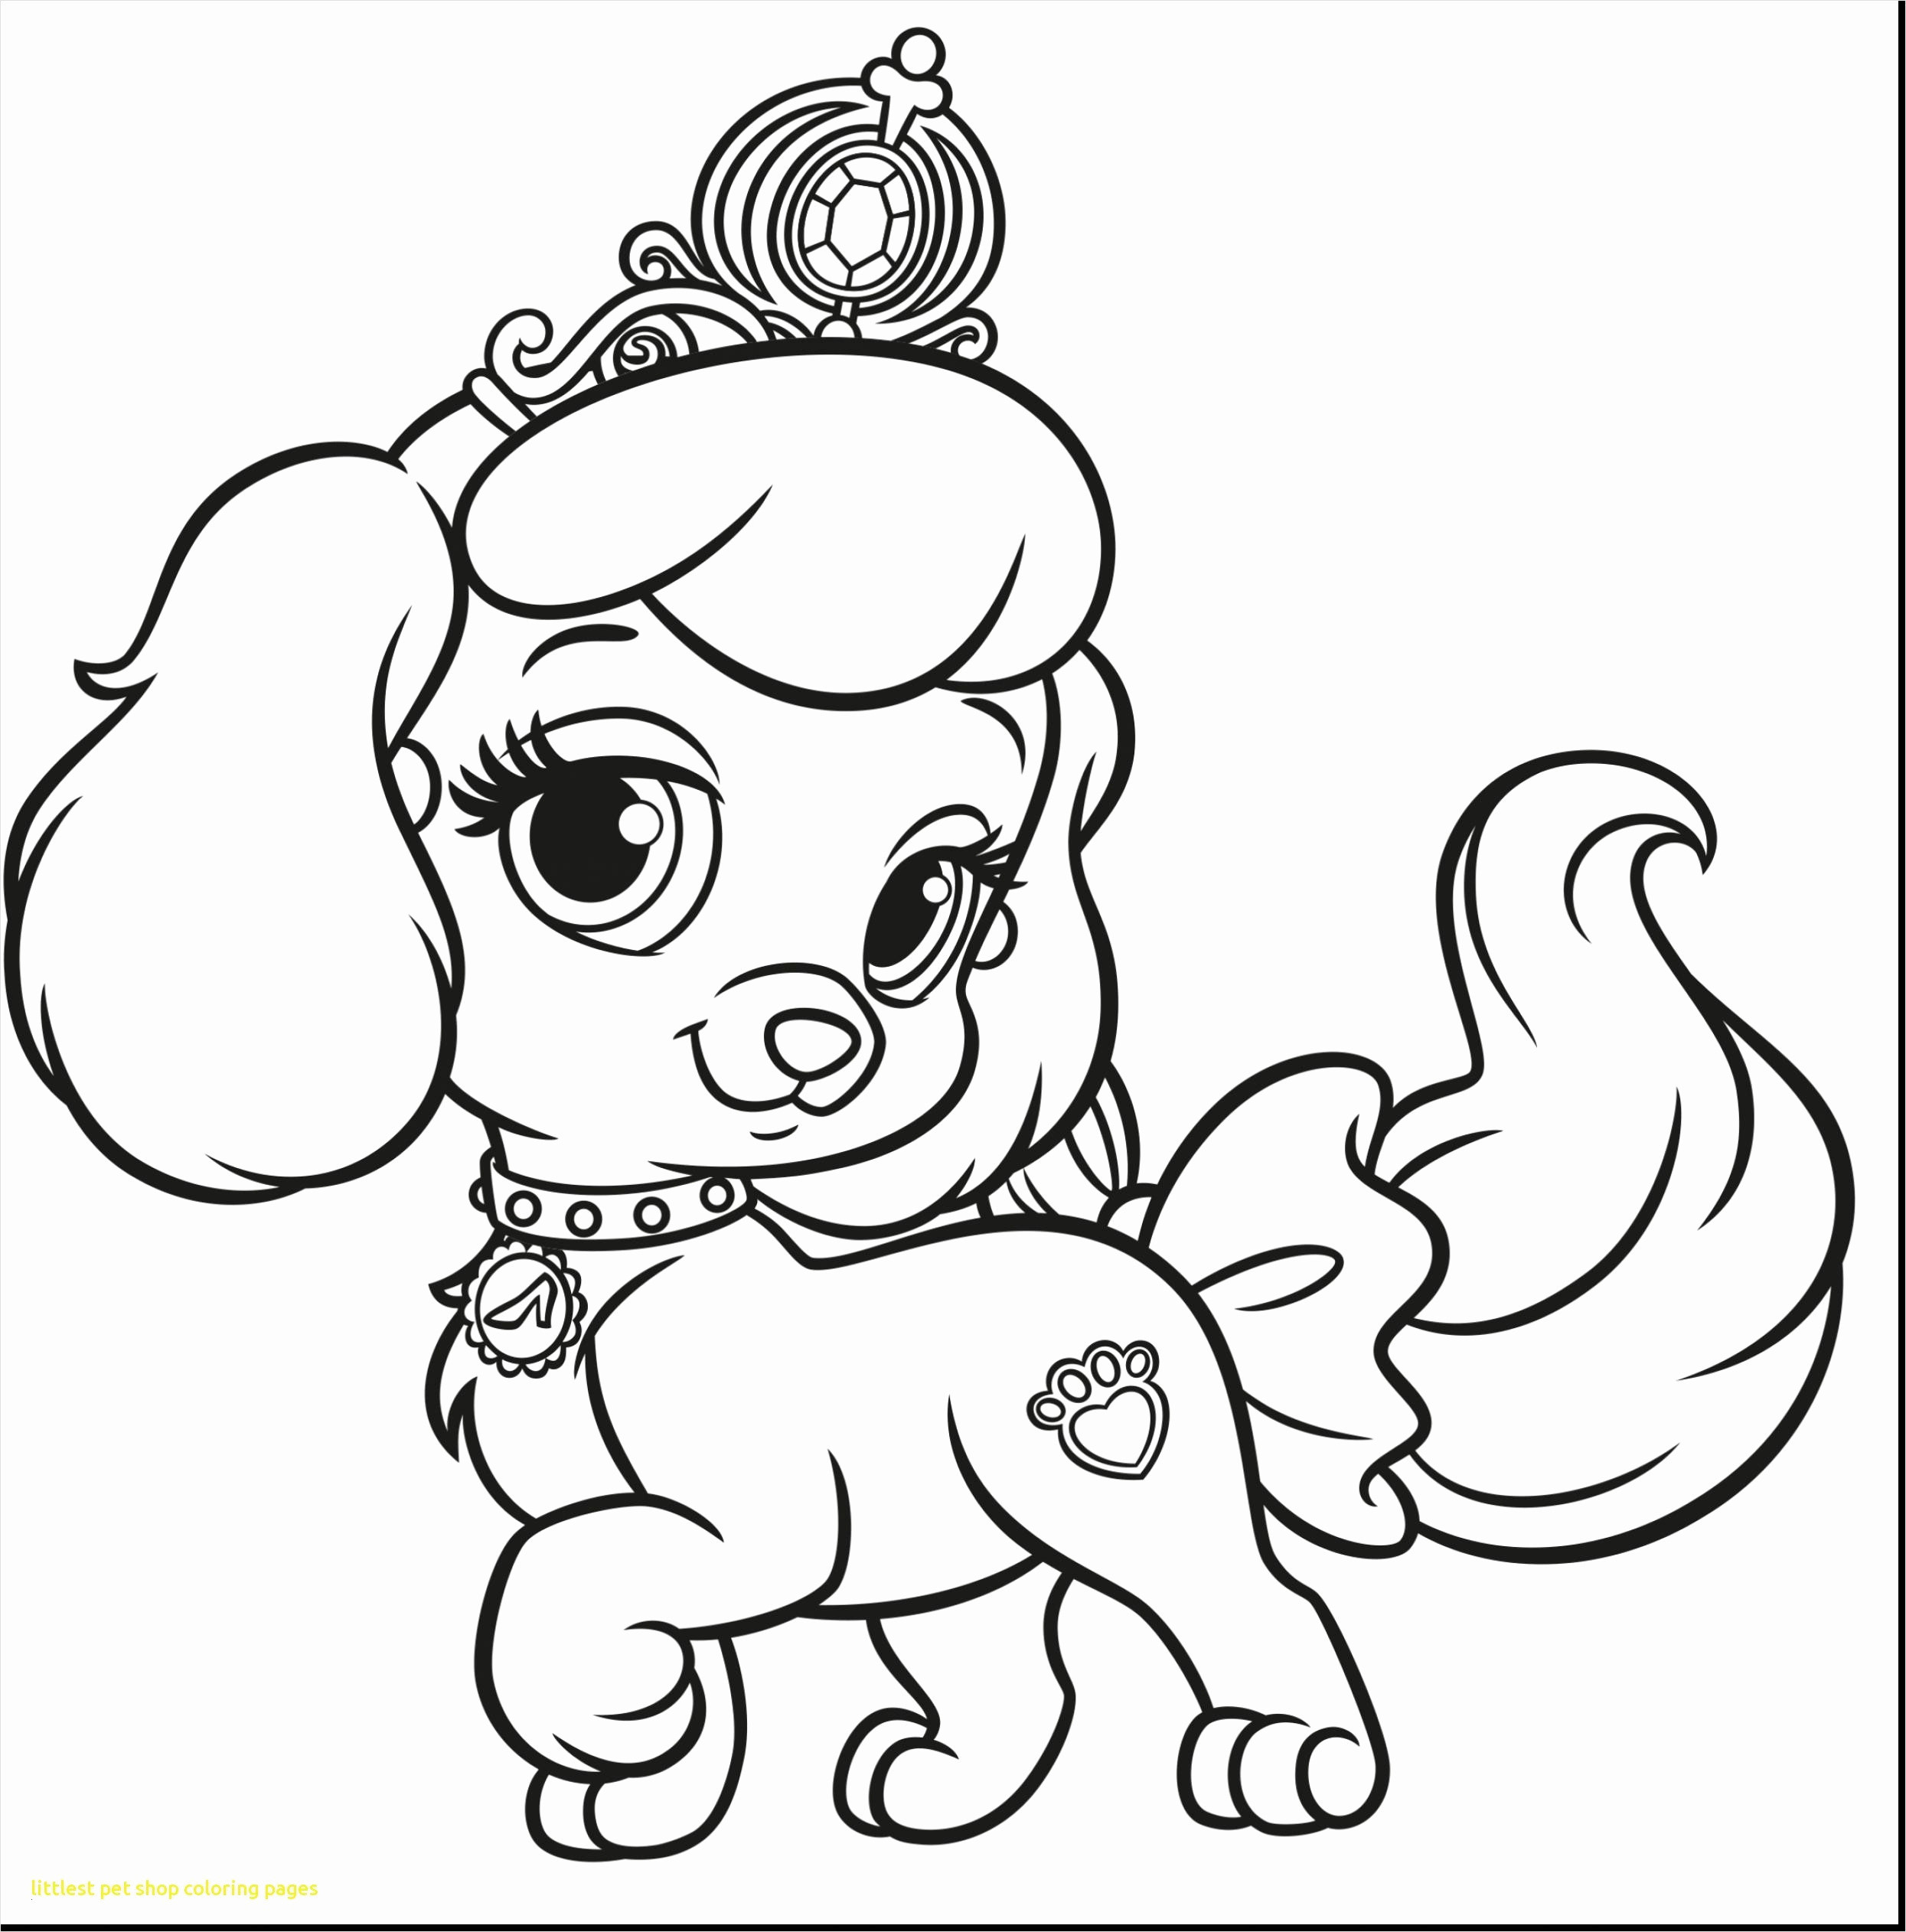 Diwali Coloring Pages  Download 14m - Free Download